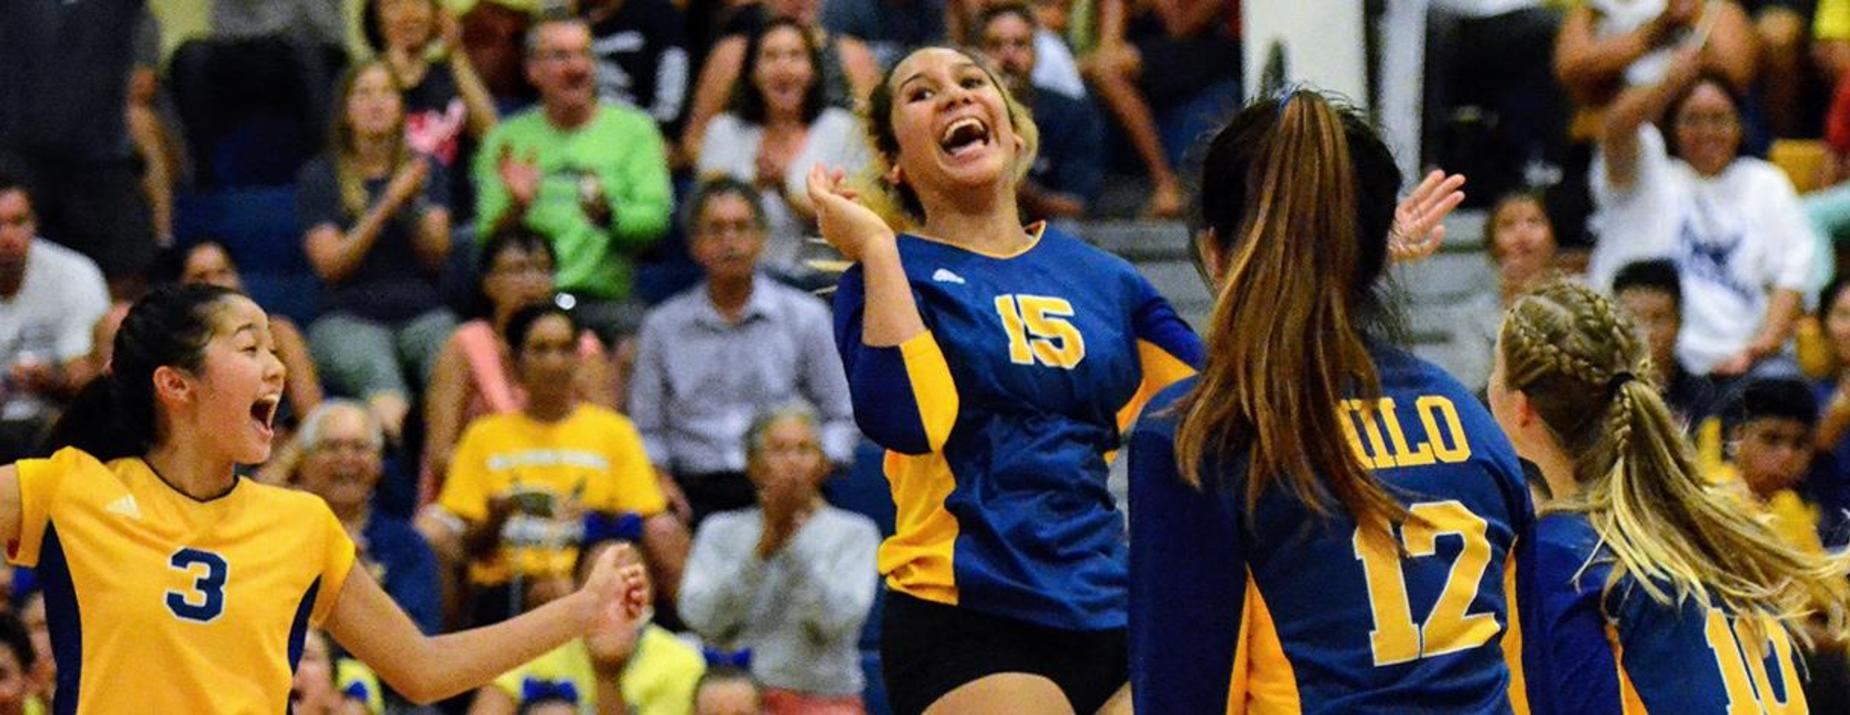 Hilo High Girl Volleyball players expresses the joy of winning a game!